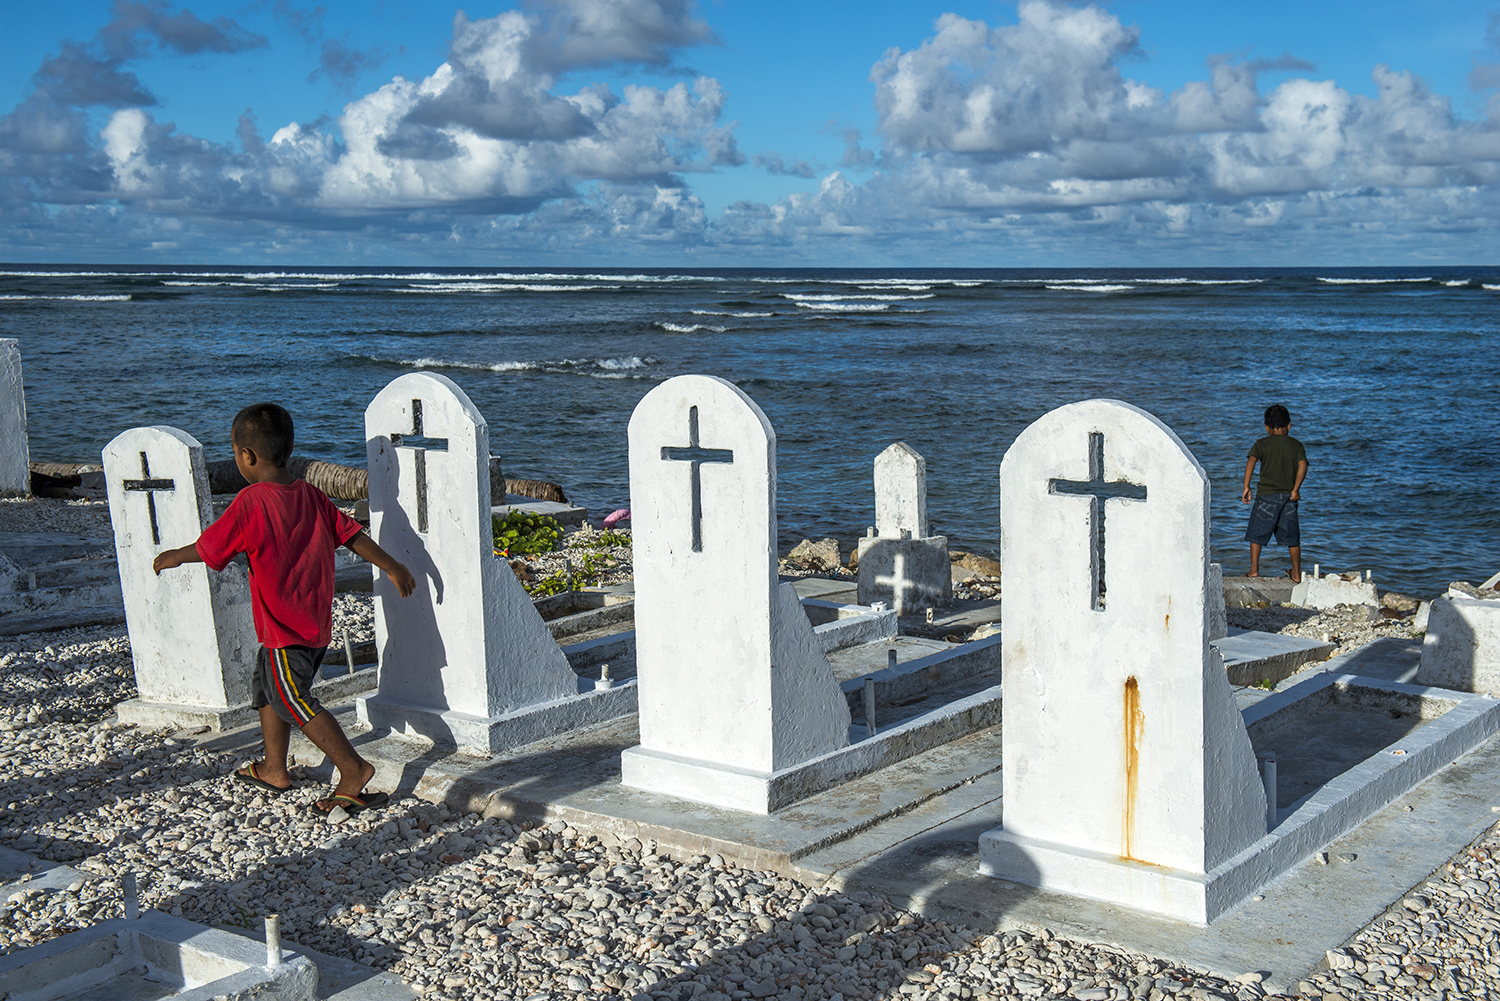 Climate Change Focus On Marshall Islands